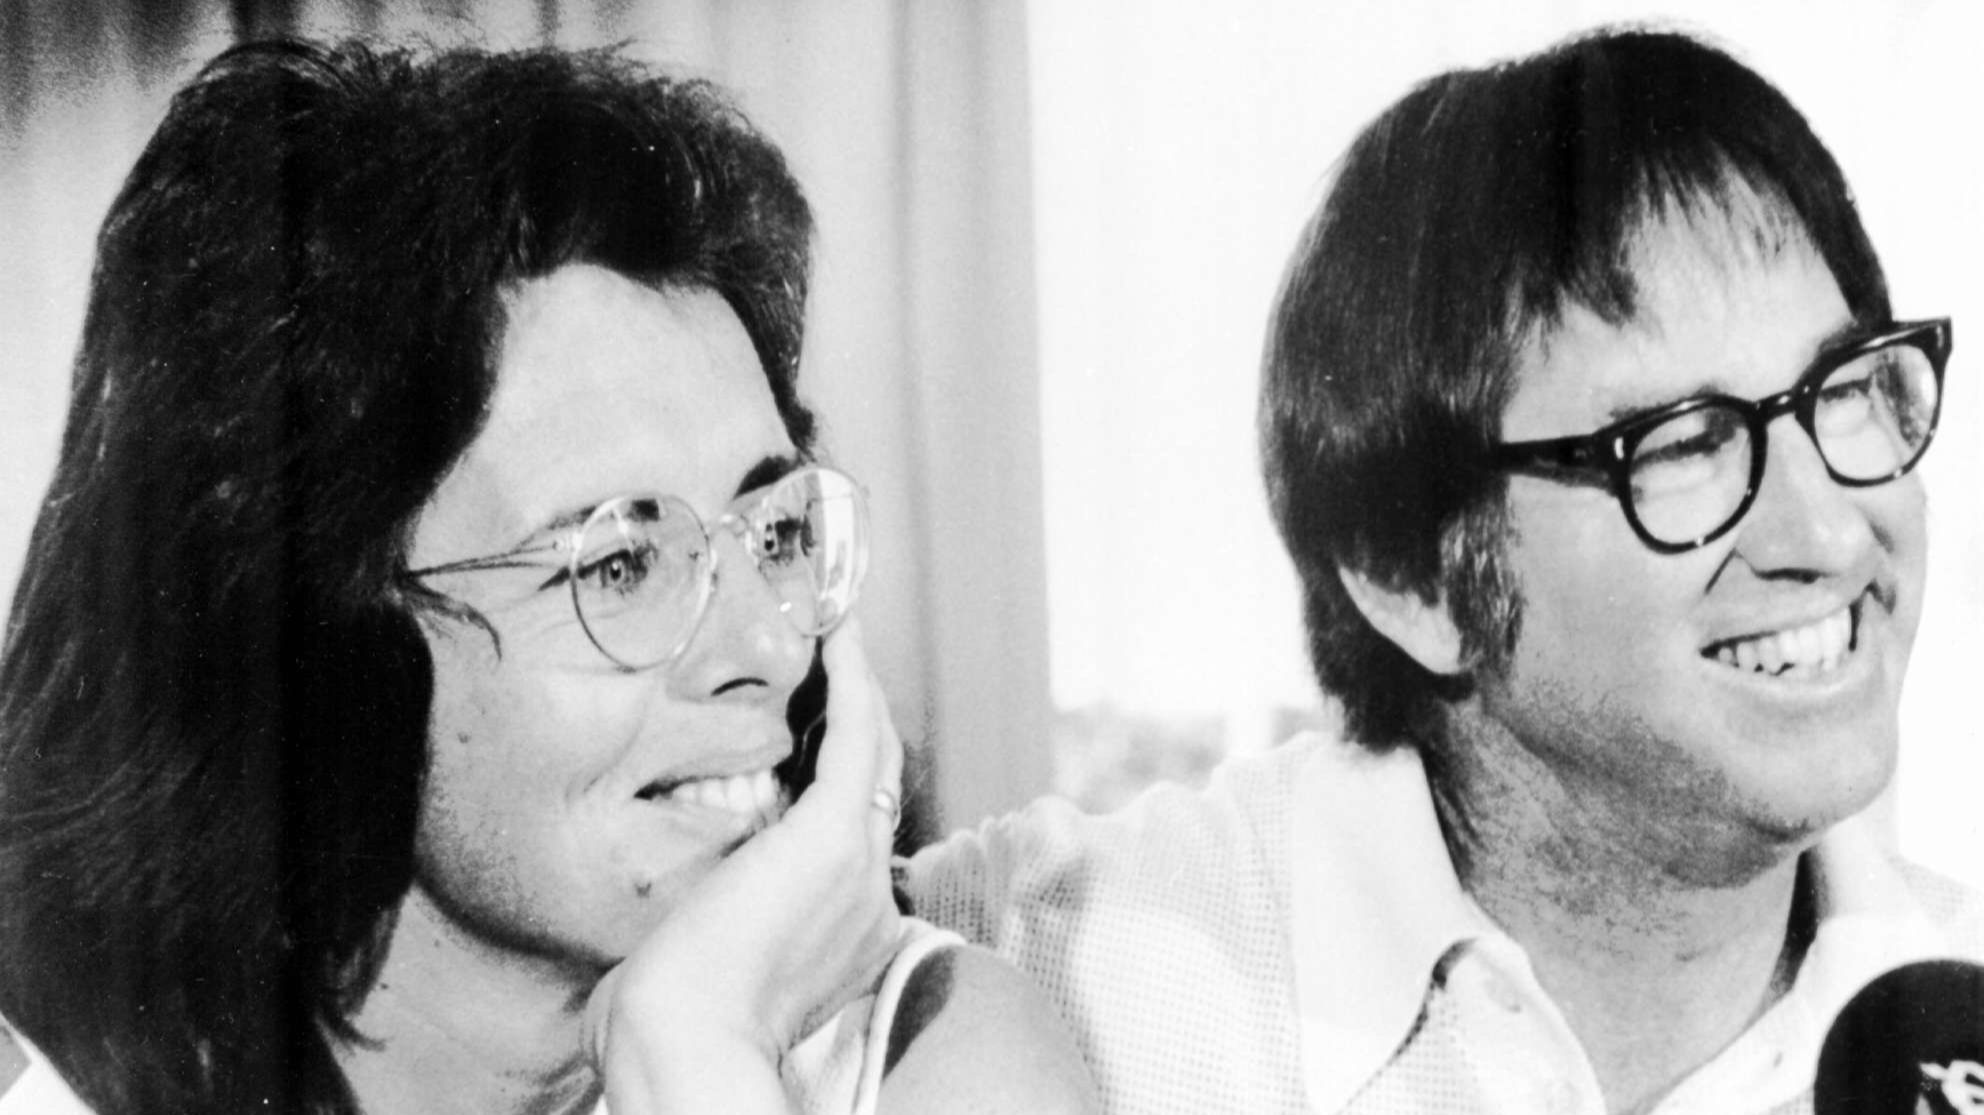 Billie Jean King and Bobby Riggs smile during a news conference in New York to publicize their upcoming match at the Houston Astrodome, in this July 11, 1973 photo.